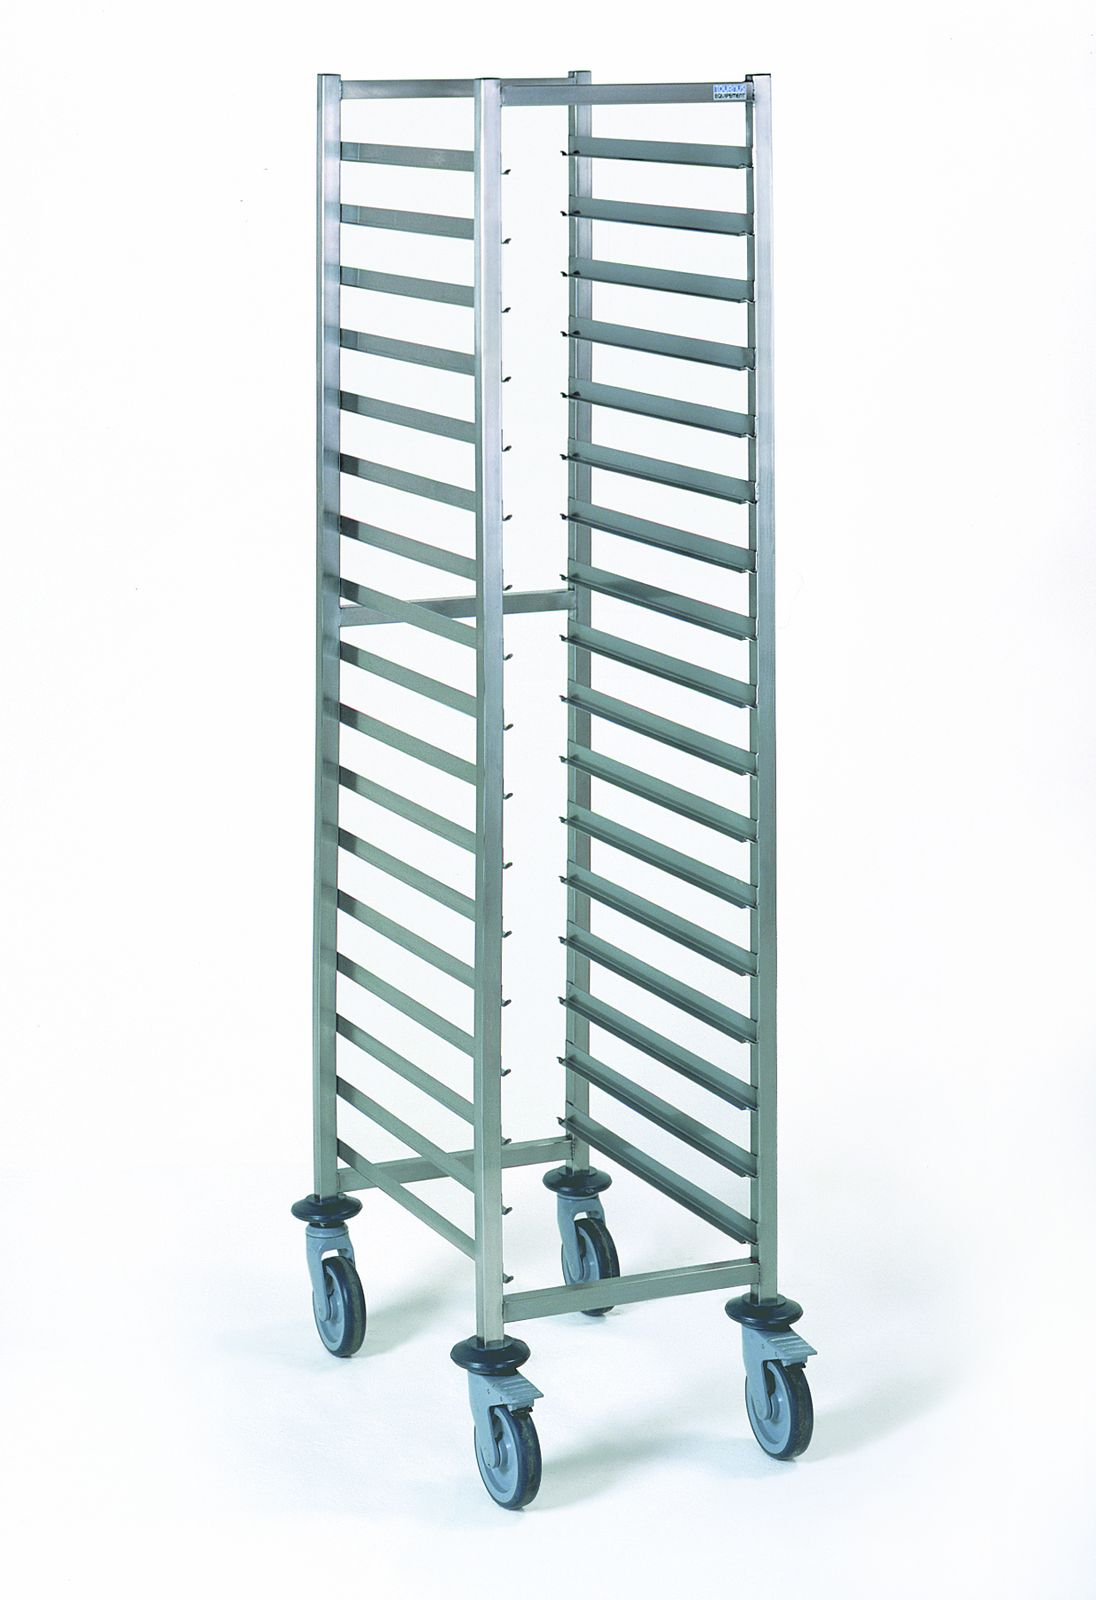 Gastronorm Racking Trolley GN 1/1 x 17 levels stainless steel